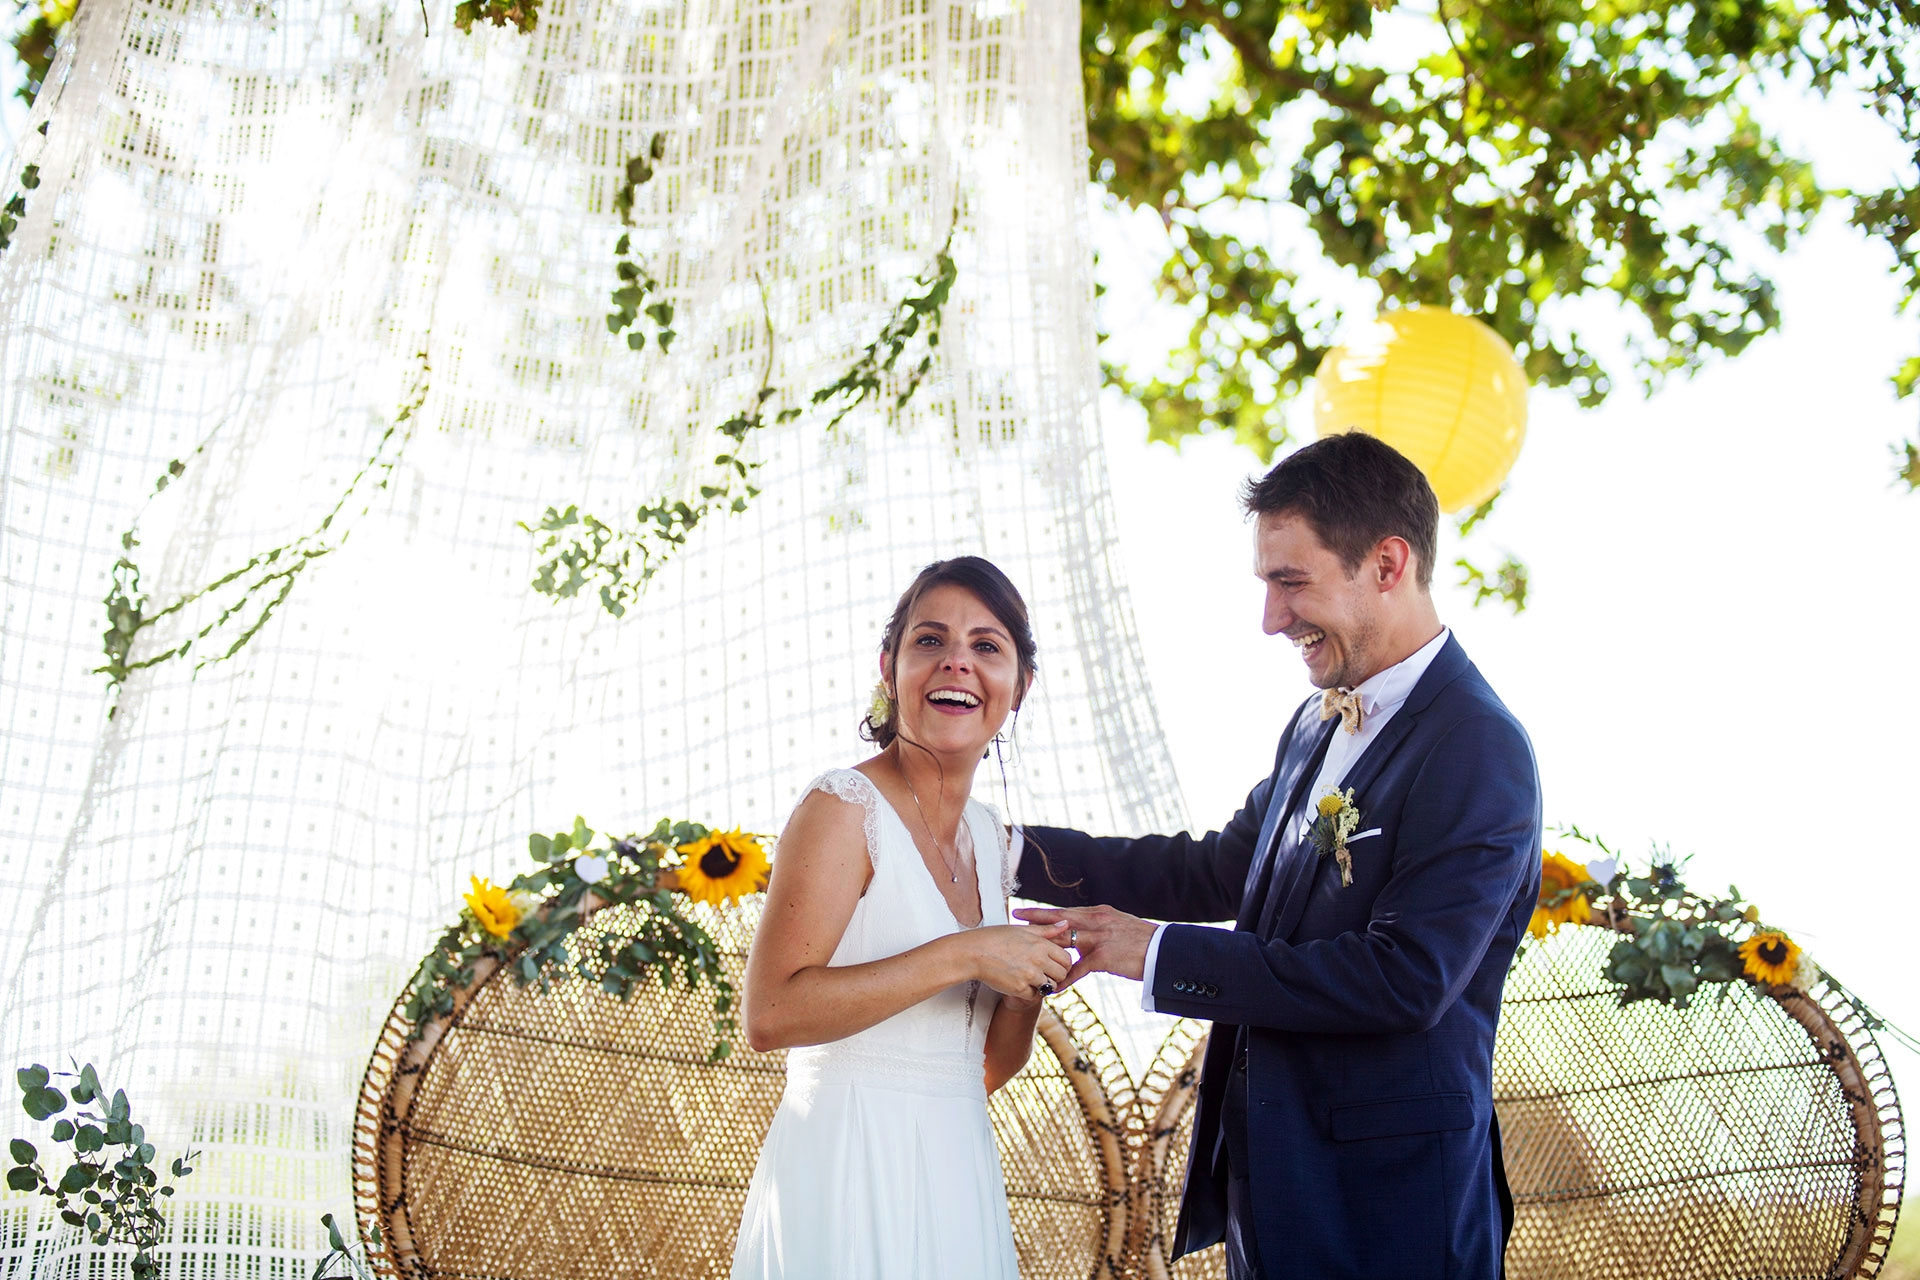 mariage-elise-quentin-41